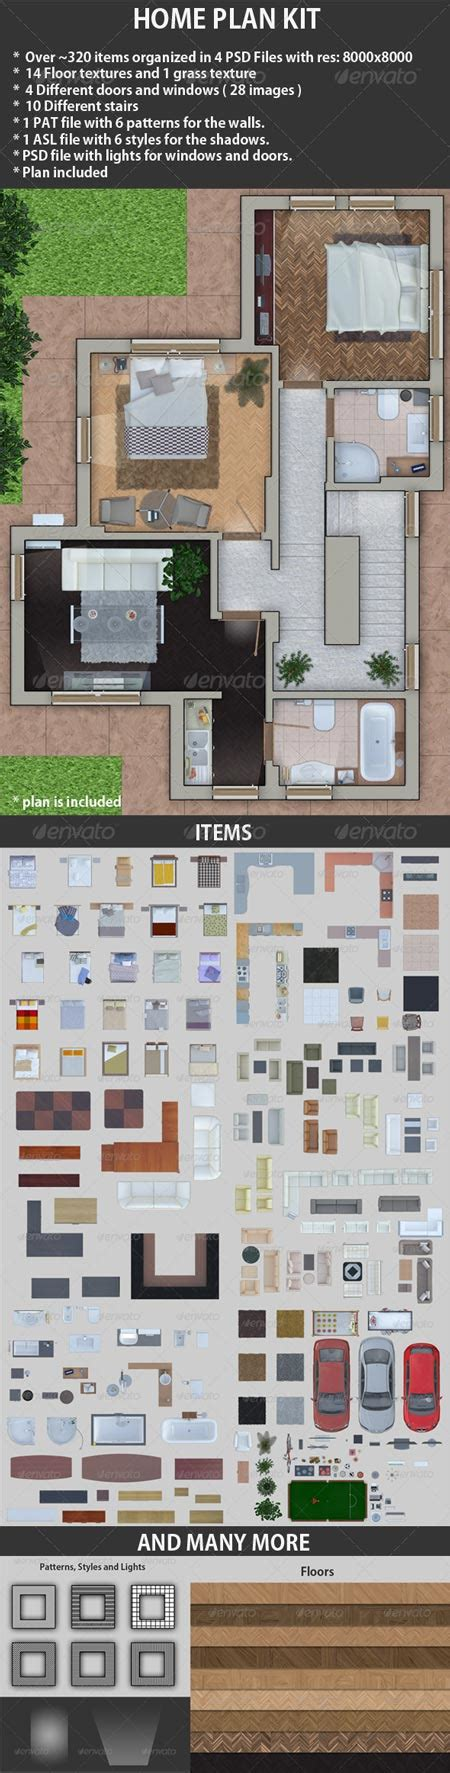 3d home kit design works furniture plan psd layered material all design template